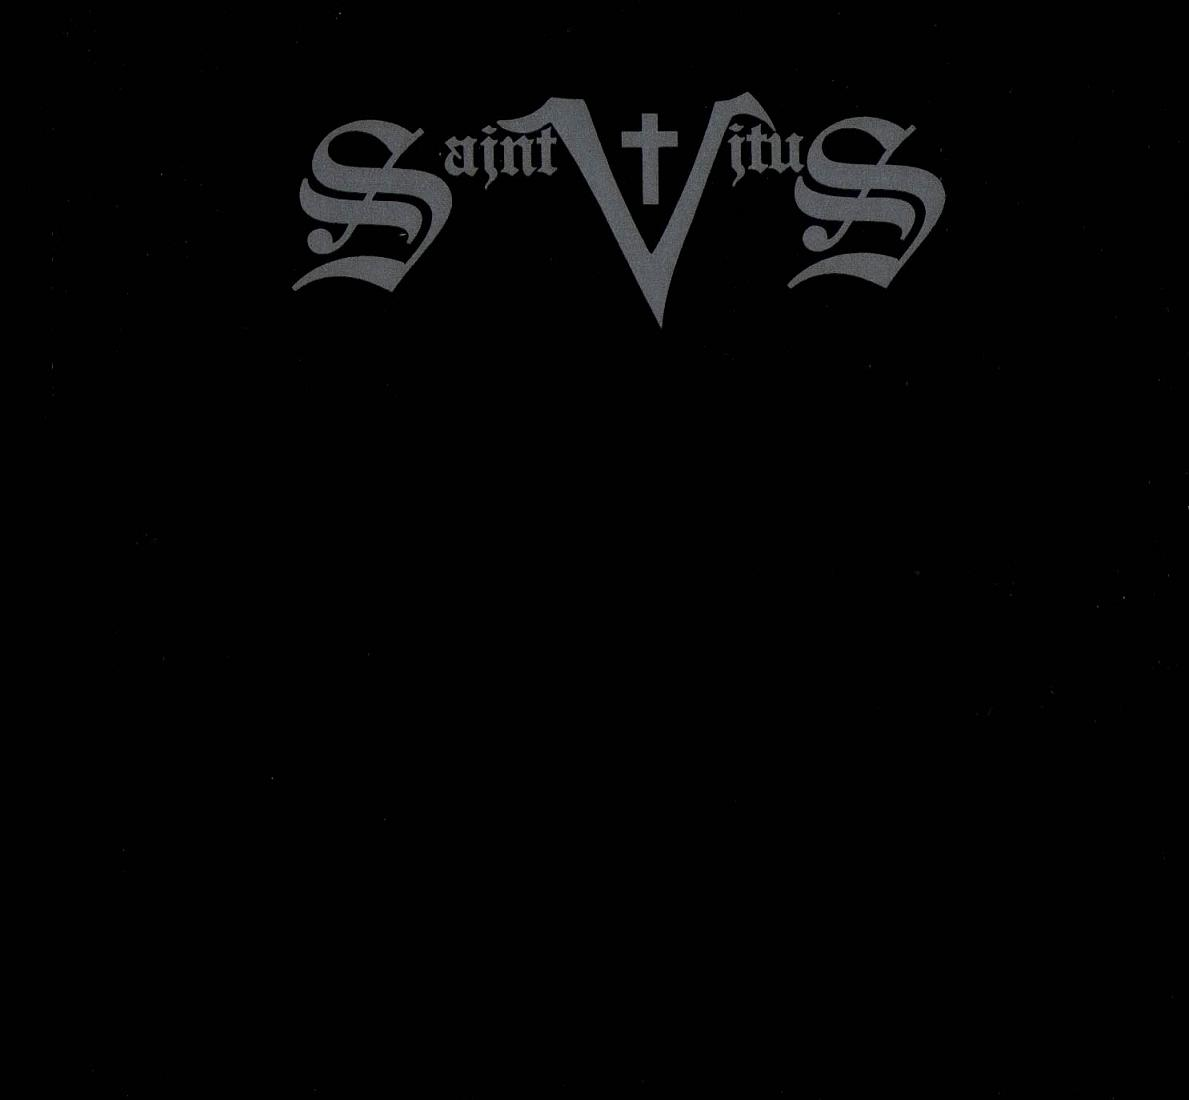 Saint Vitus Logo photo - 1